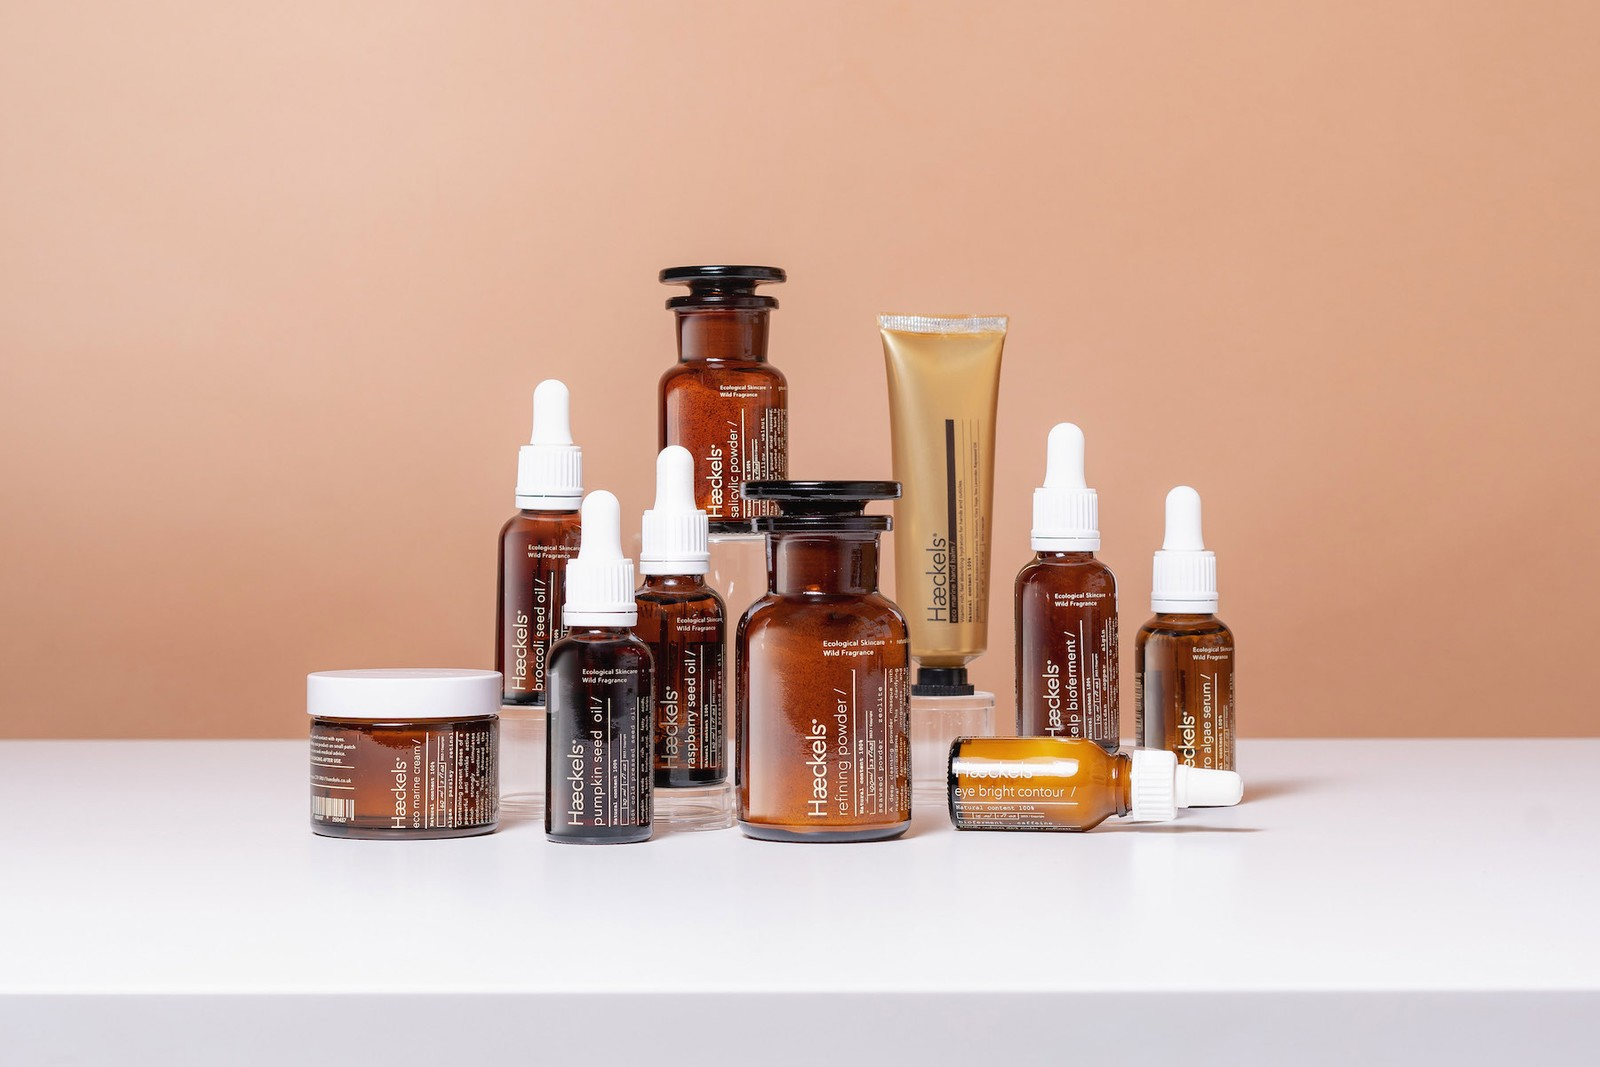 Vegan Skincare Label Haeckels Opens Store in London Natural Beauty Store Location Products